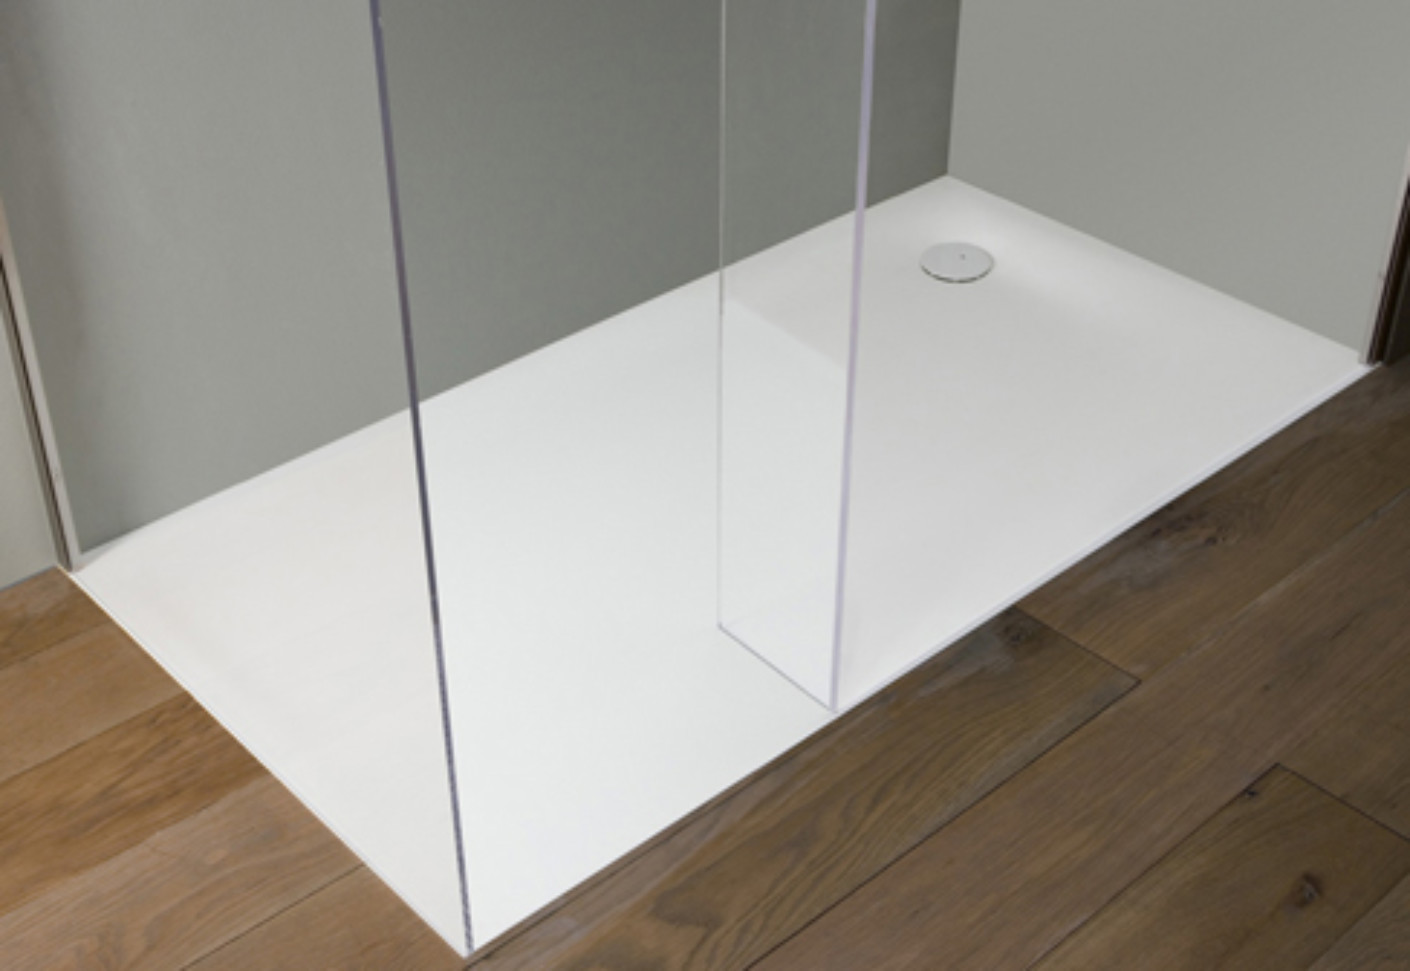 00 shower base by Antonio Lupi  STYLEPARK